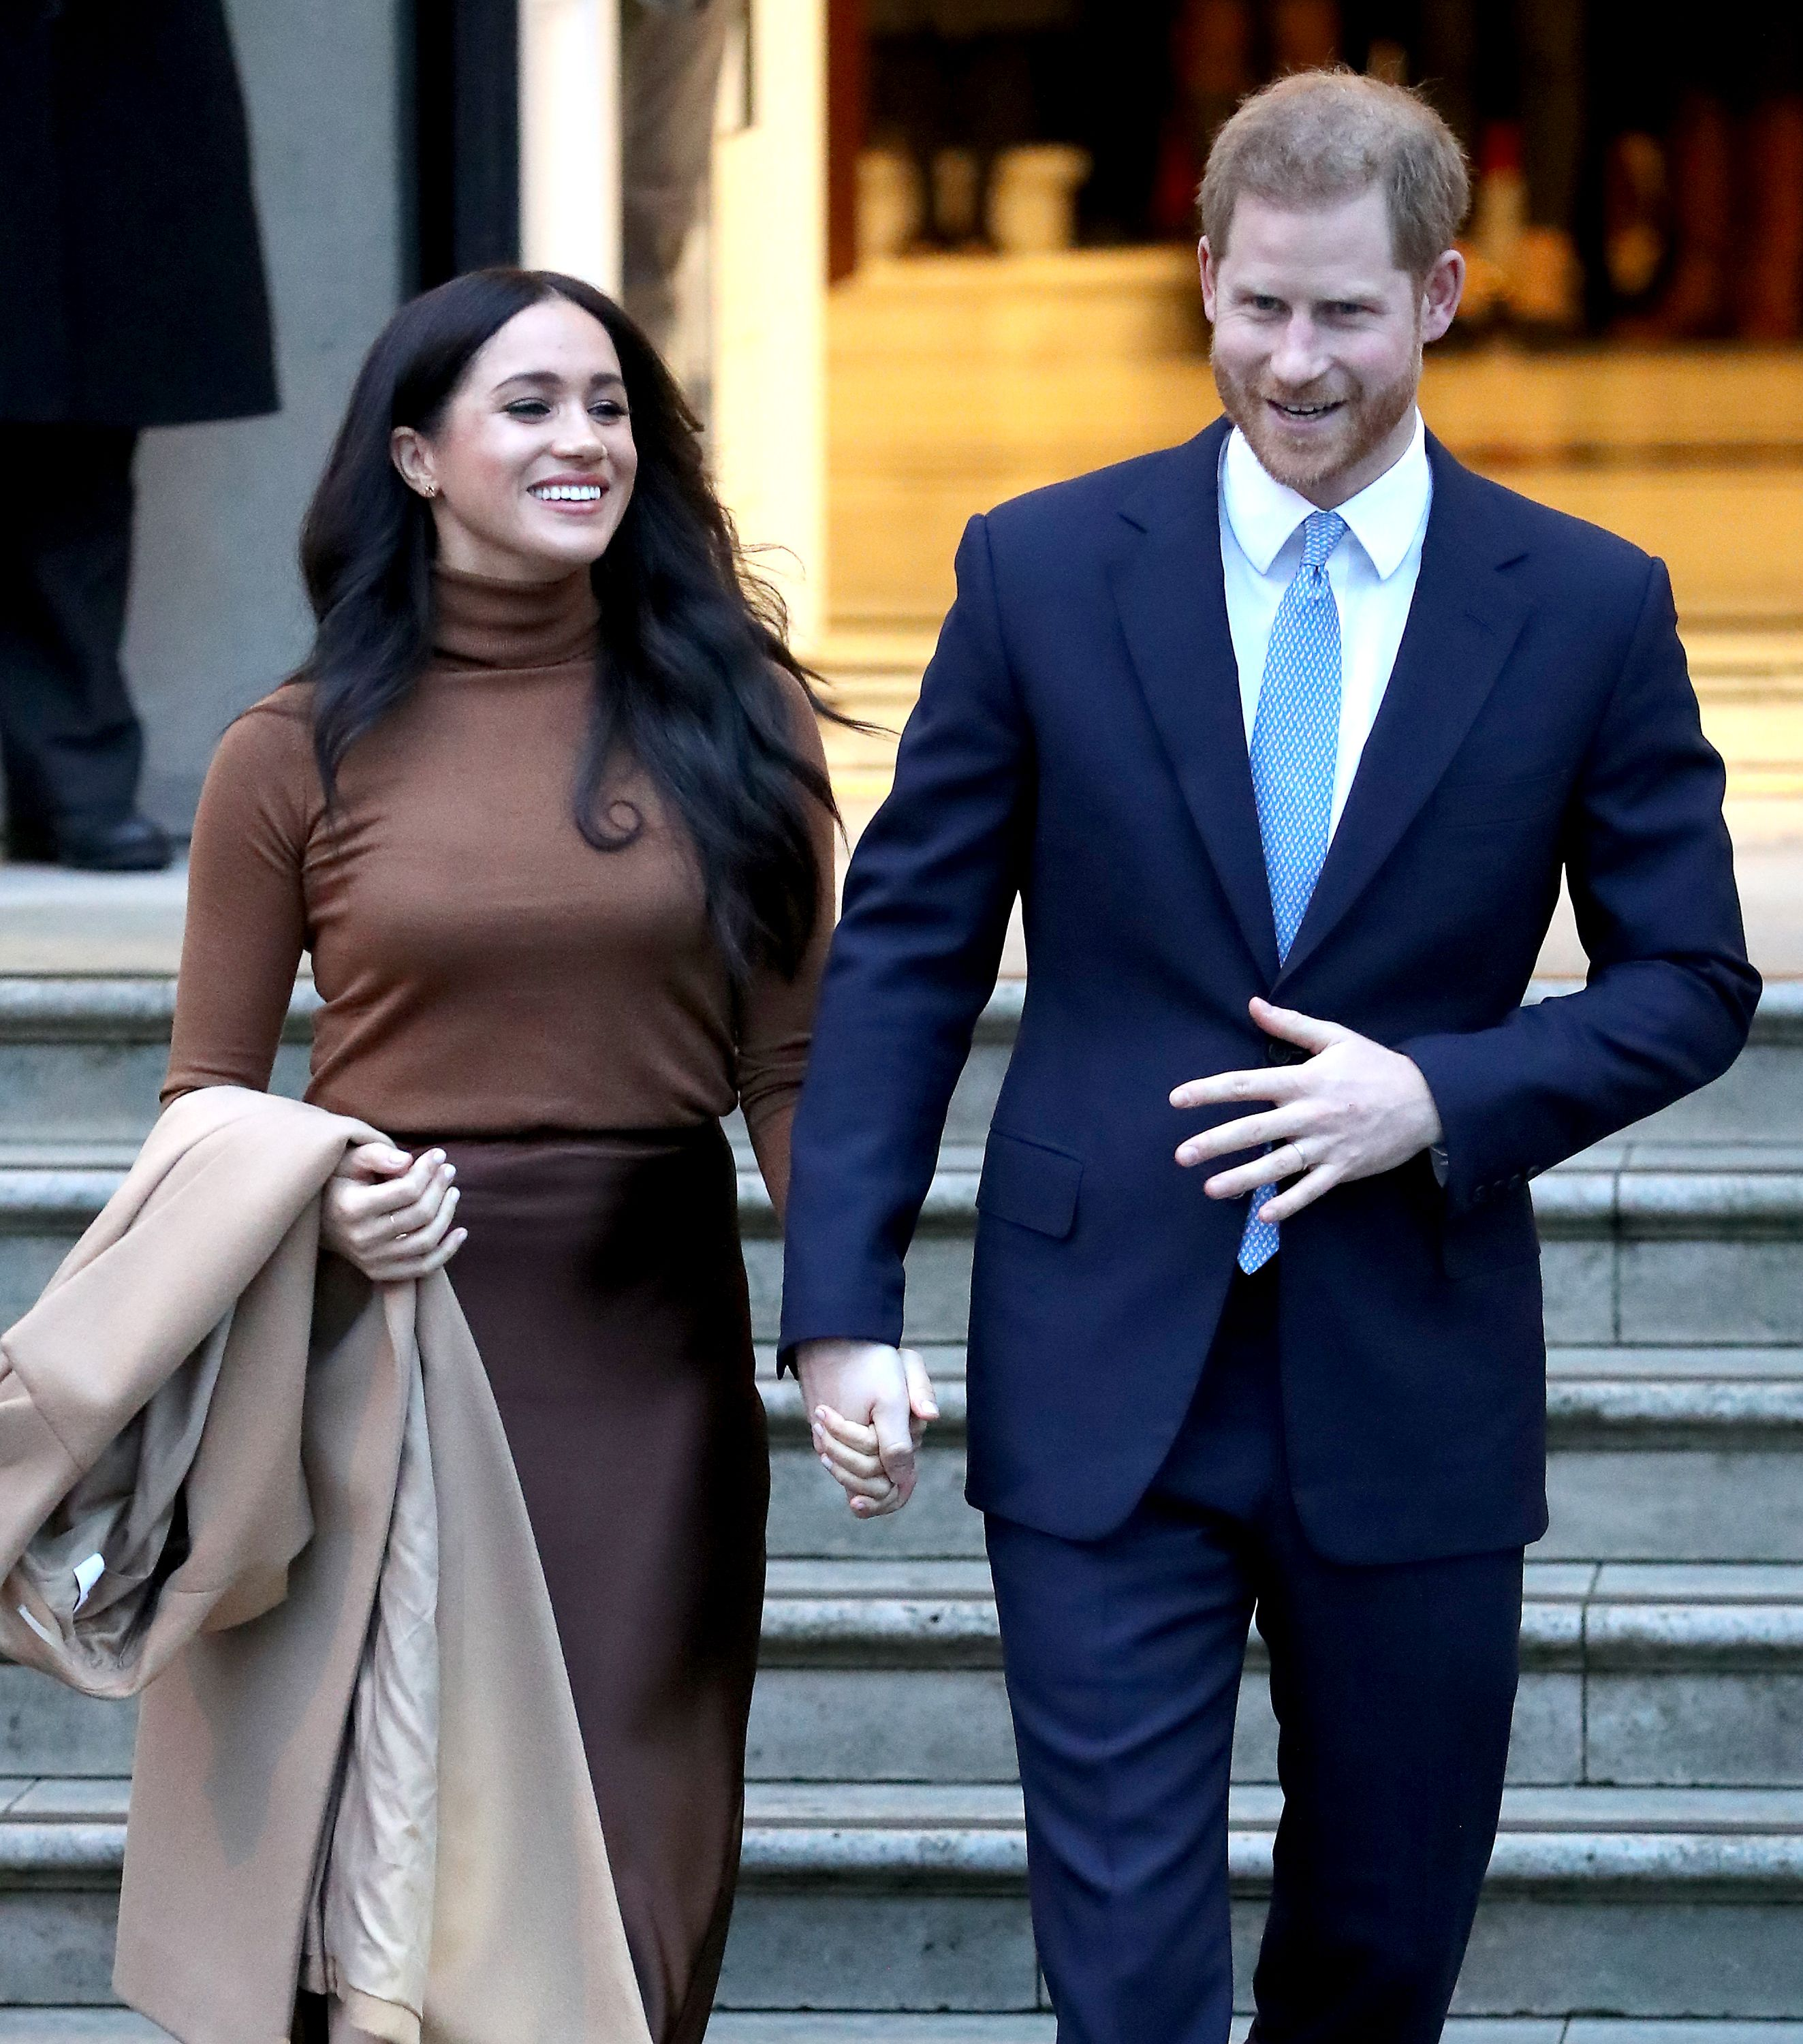 Prince Harry holding Meghan Markle's hand while they are both smiling